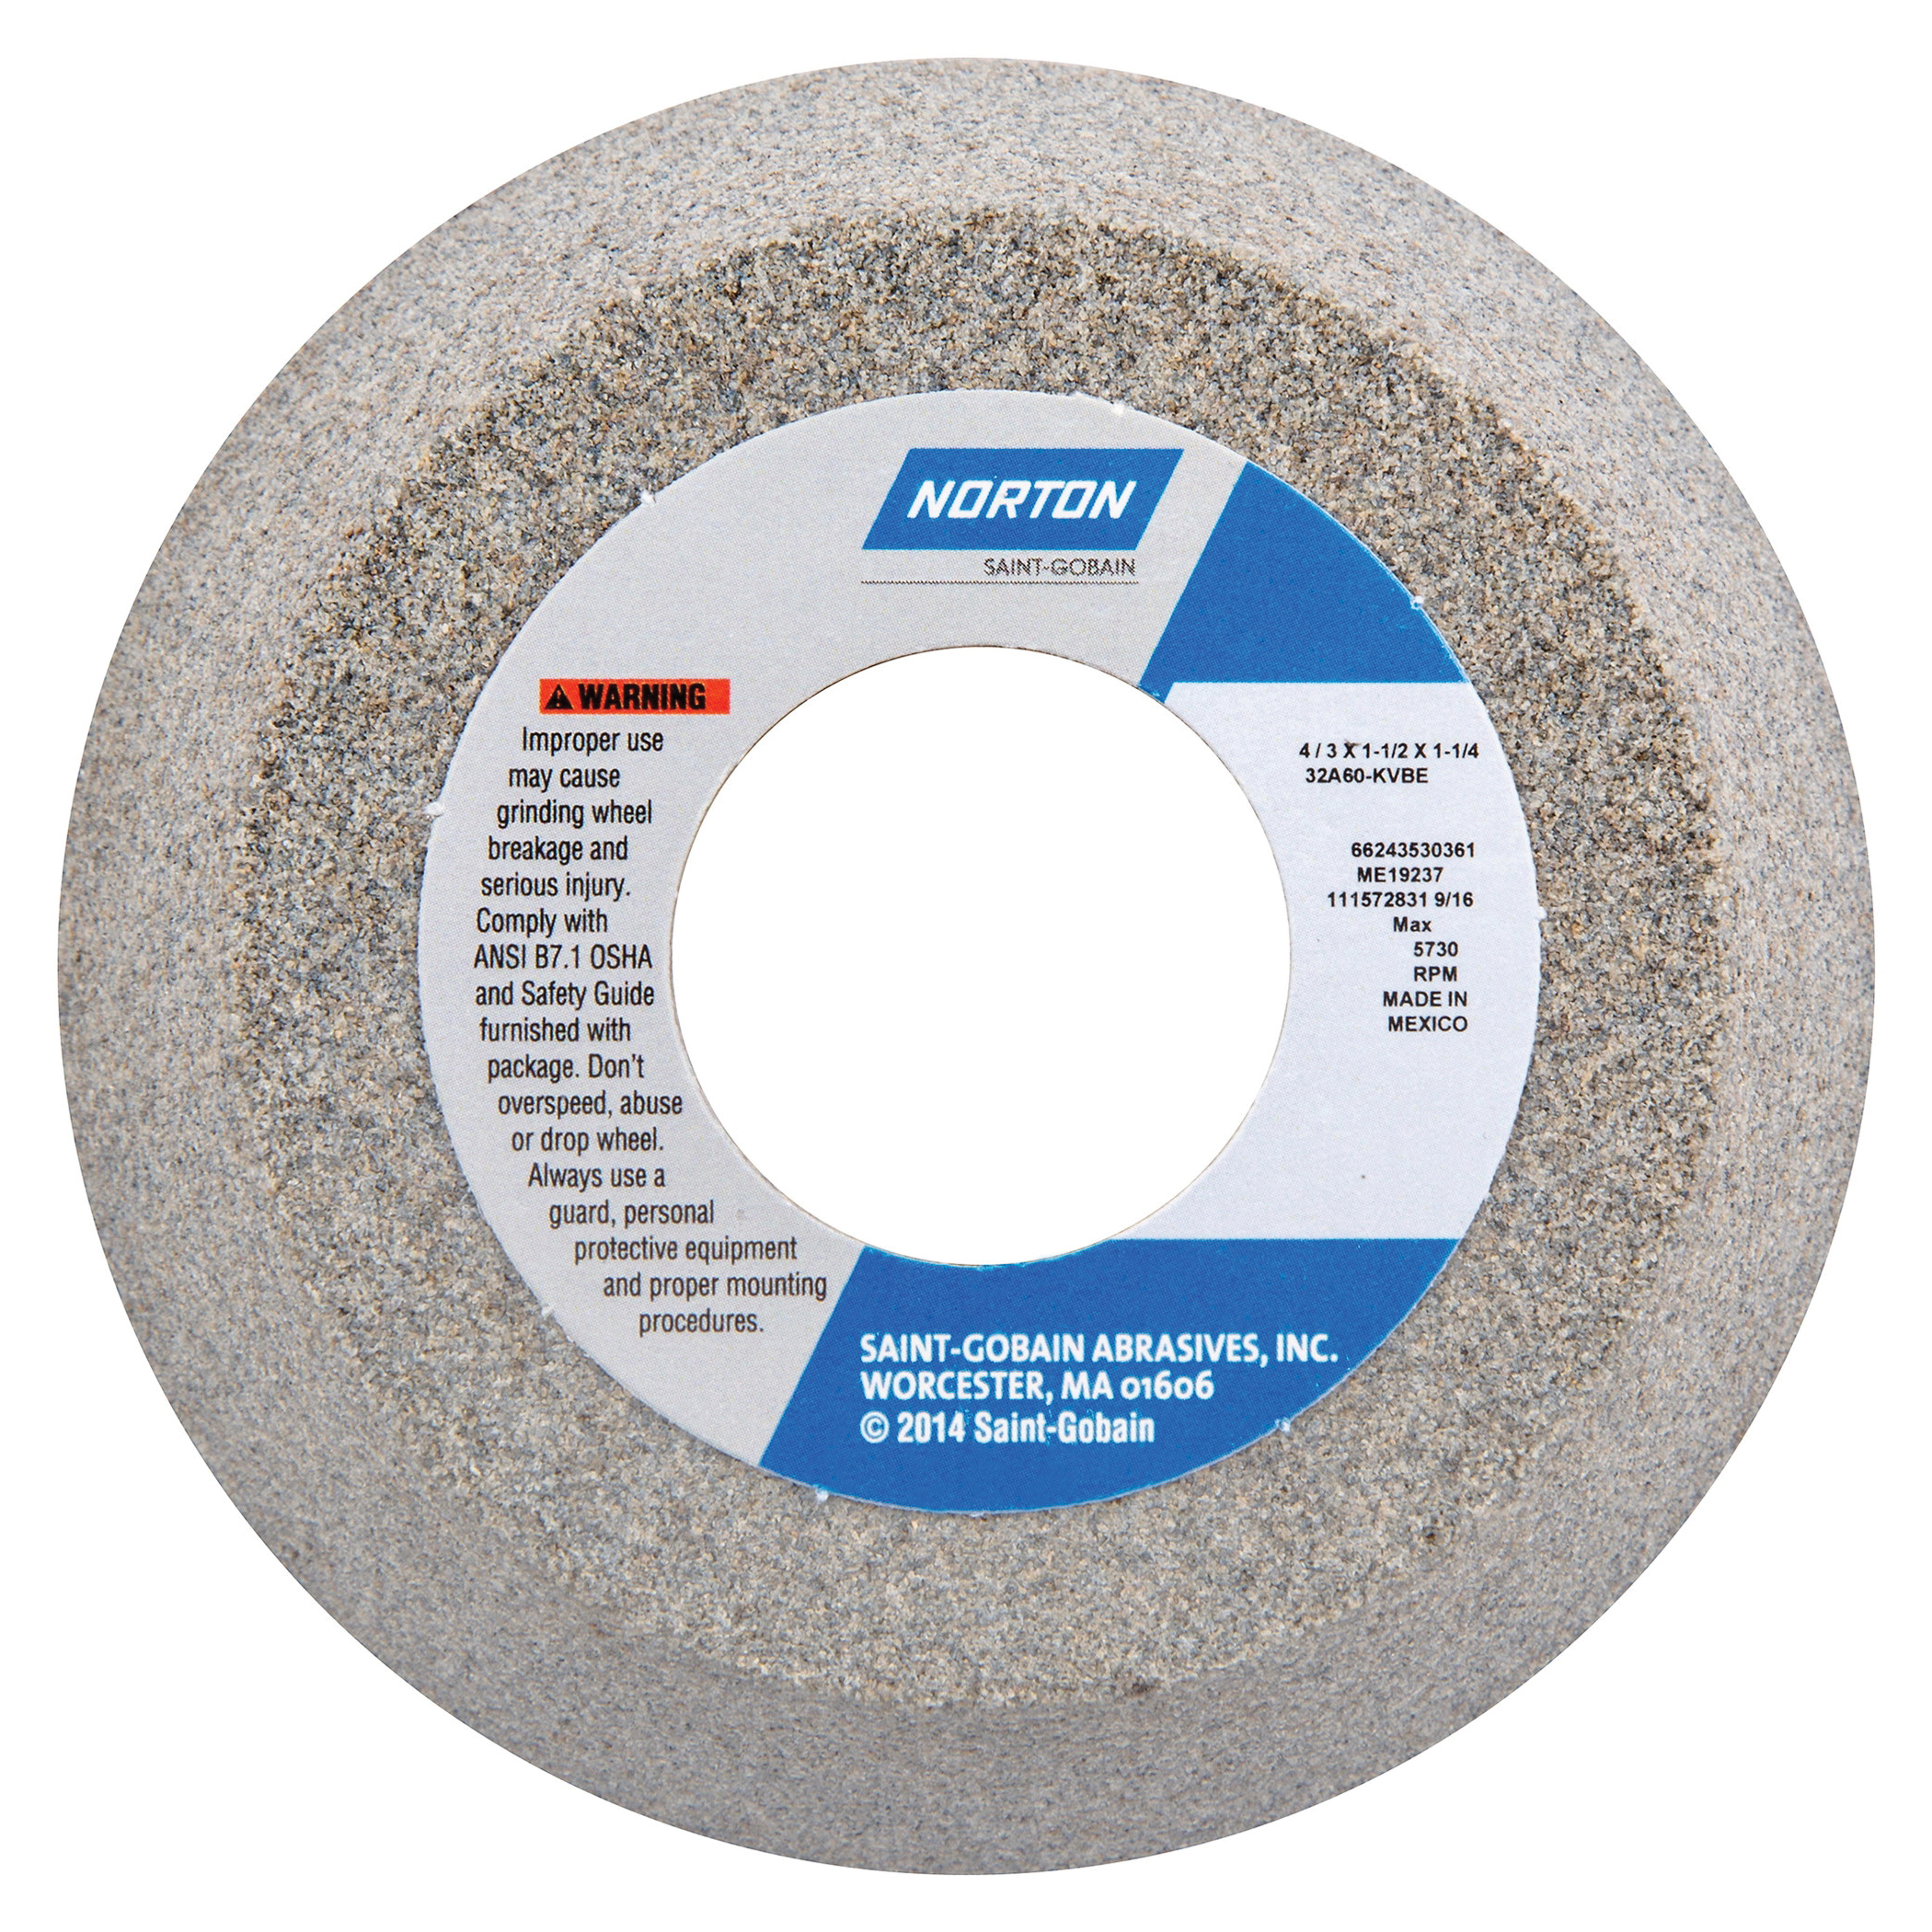 Norton® 66243530361 32A Toolroom Wheel, 4 in Dia x 1-1/2 in THK, 1-1/4 in Center Hole, 60 Grit, Aluminum Oxide Abrasive